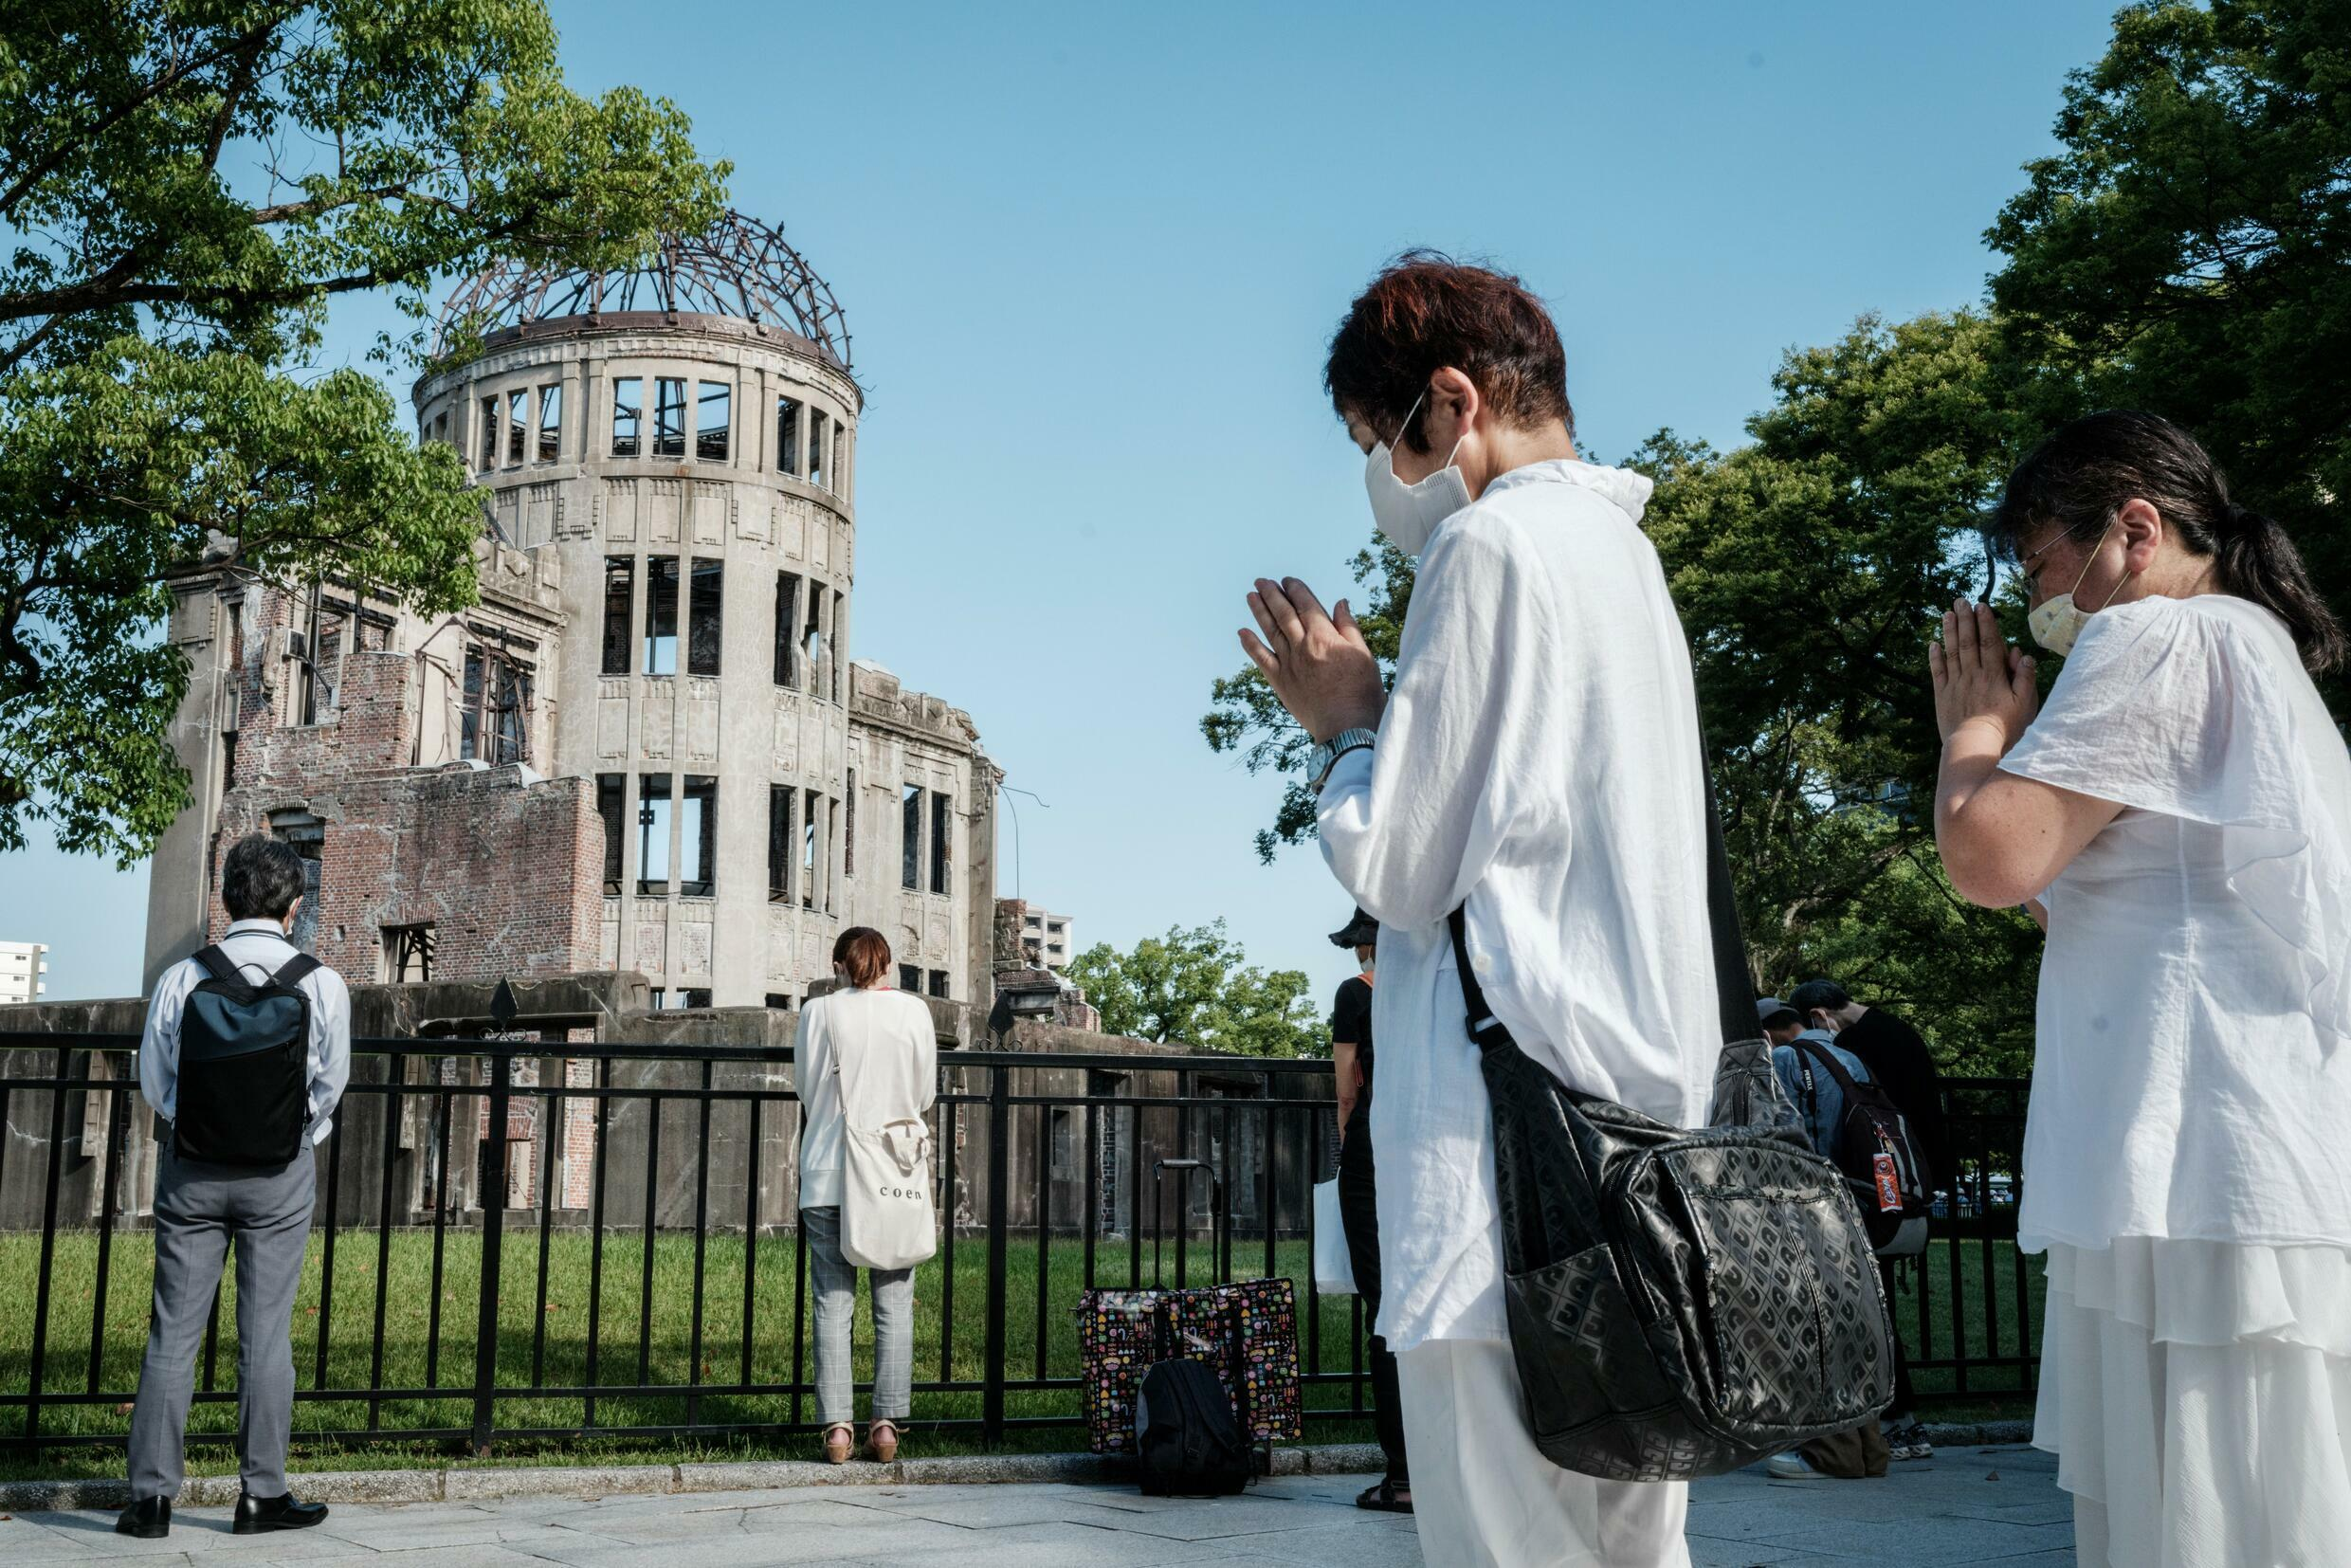 People offer prayers by the Atomic Bomb Dome in Hiroshima